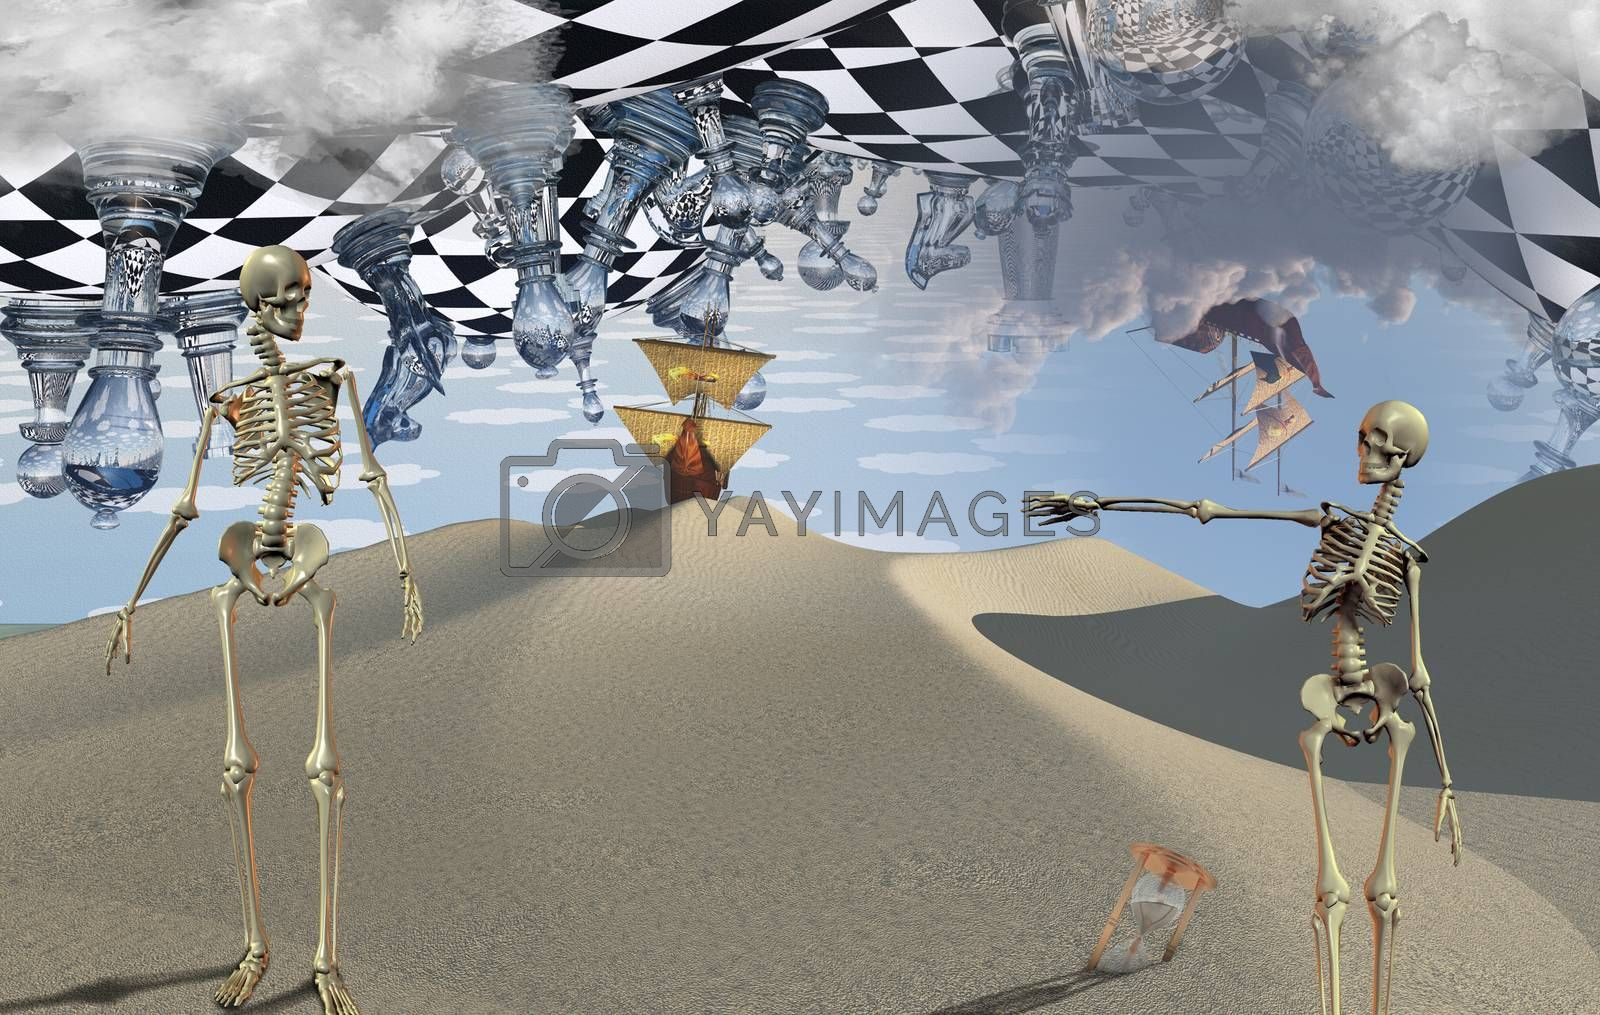 Surreal desert with chessboard and figures. Ancient ship in the sky. Skeletons and hourglass. Ancient ship on a sand dune. 3D rendering